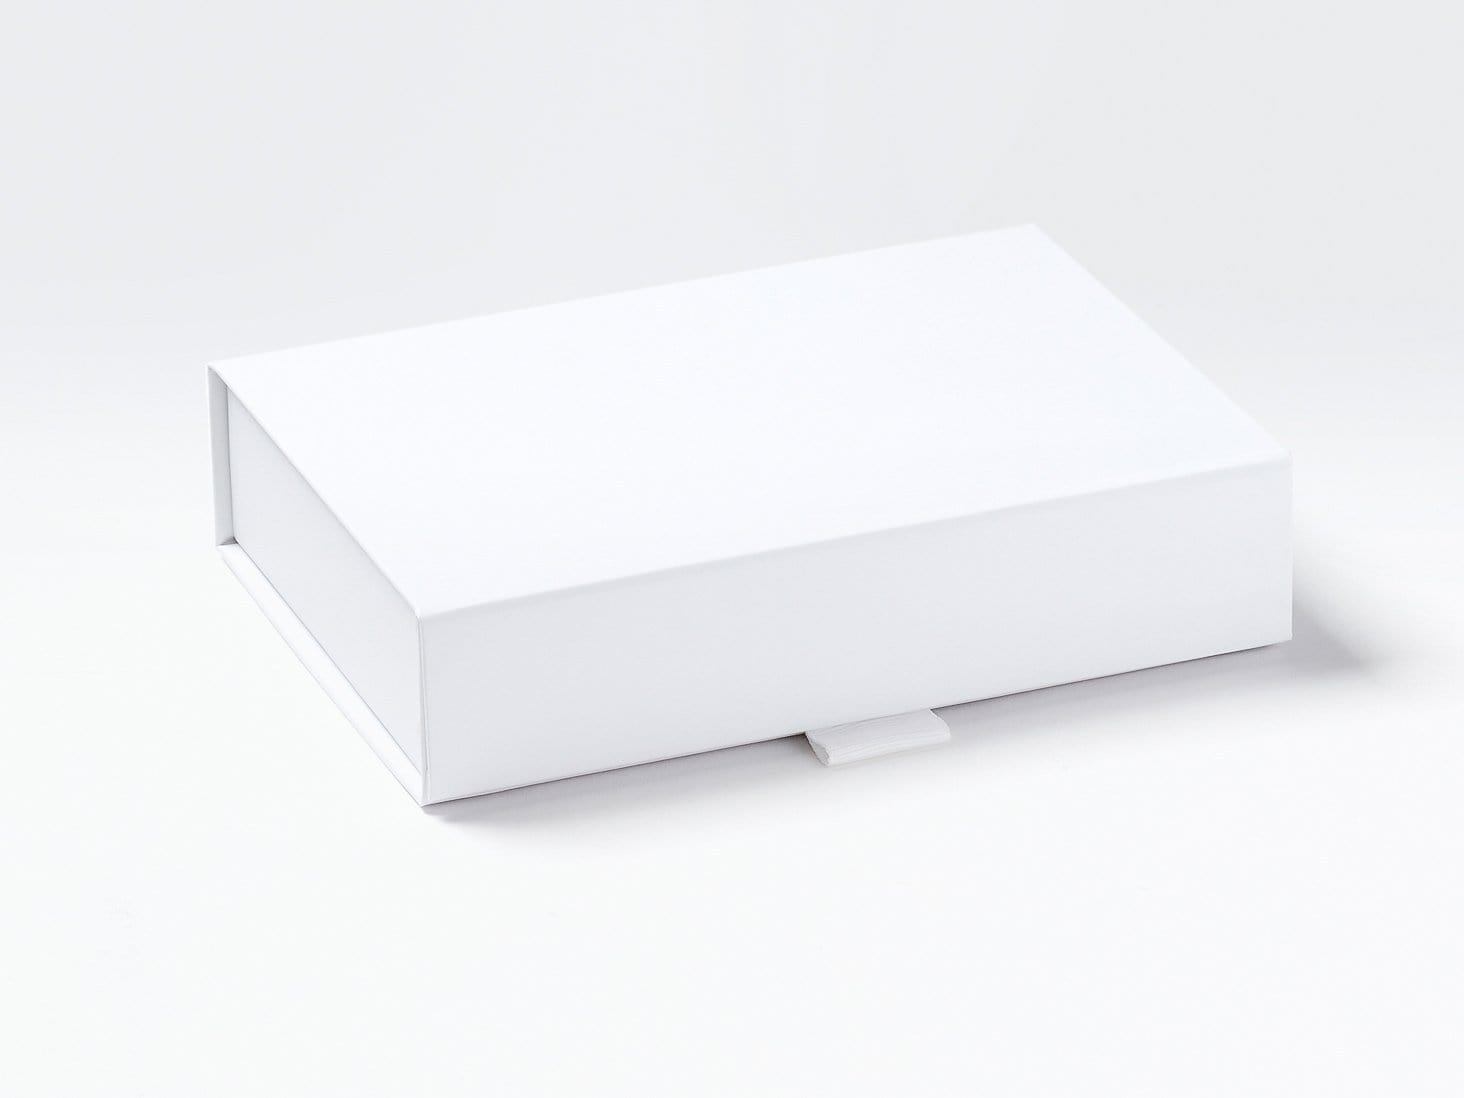 White A6 Shallow Gift Box Sample Assembled